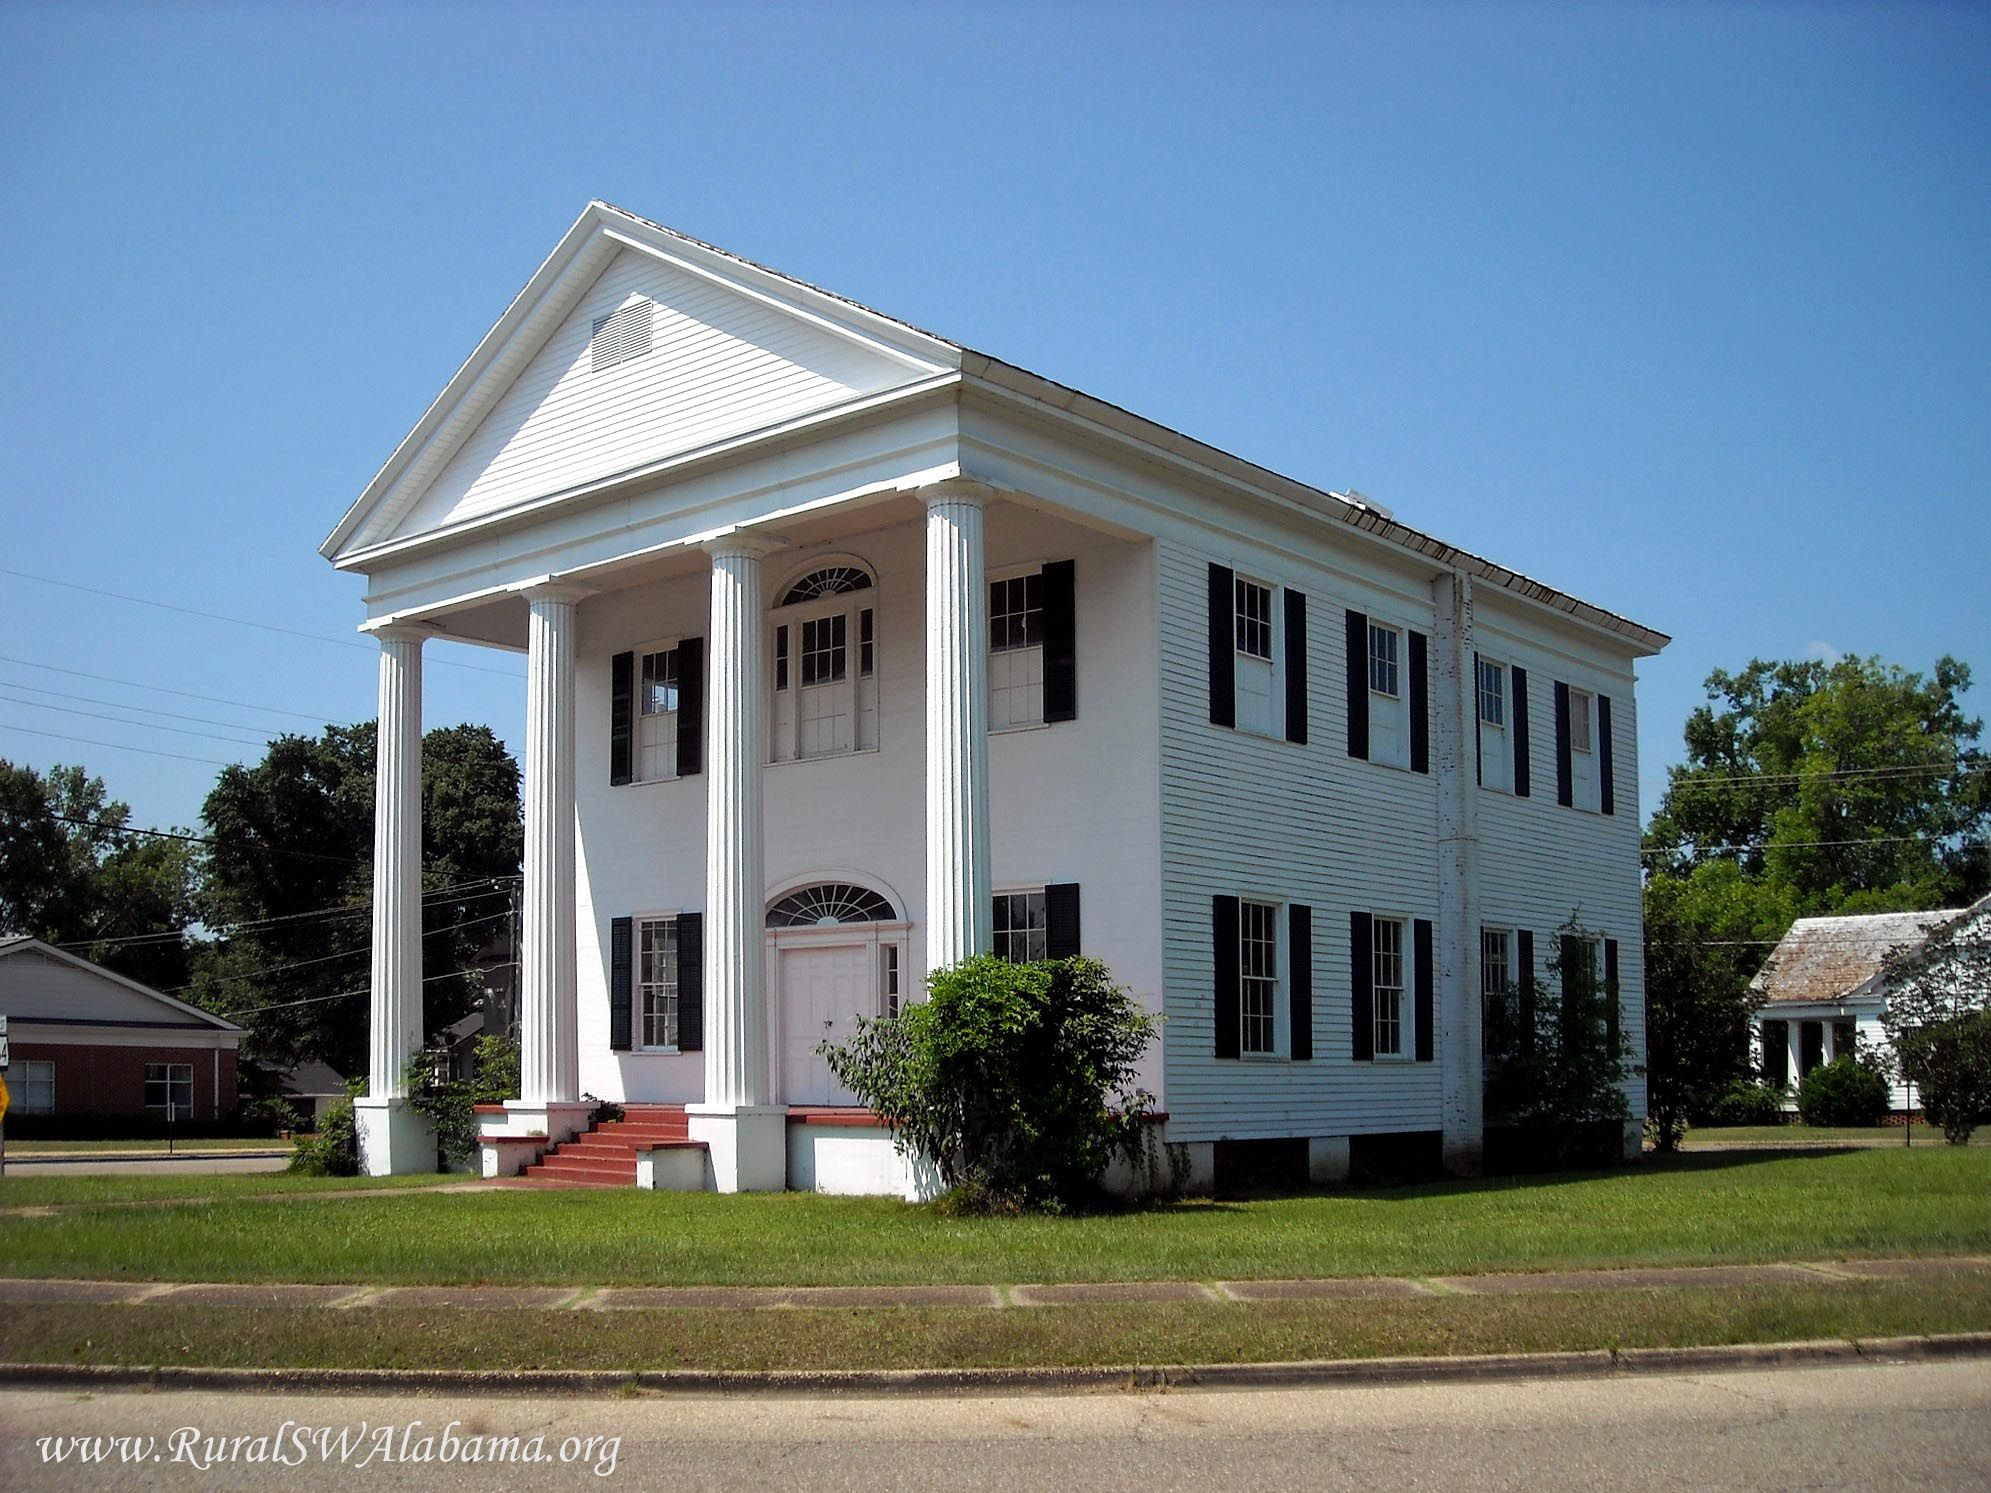 Alabama wilcox county camden - Find This Pin And More On Al Wilcox County